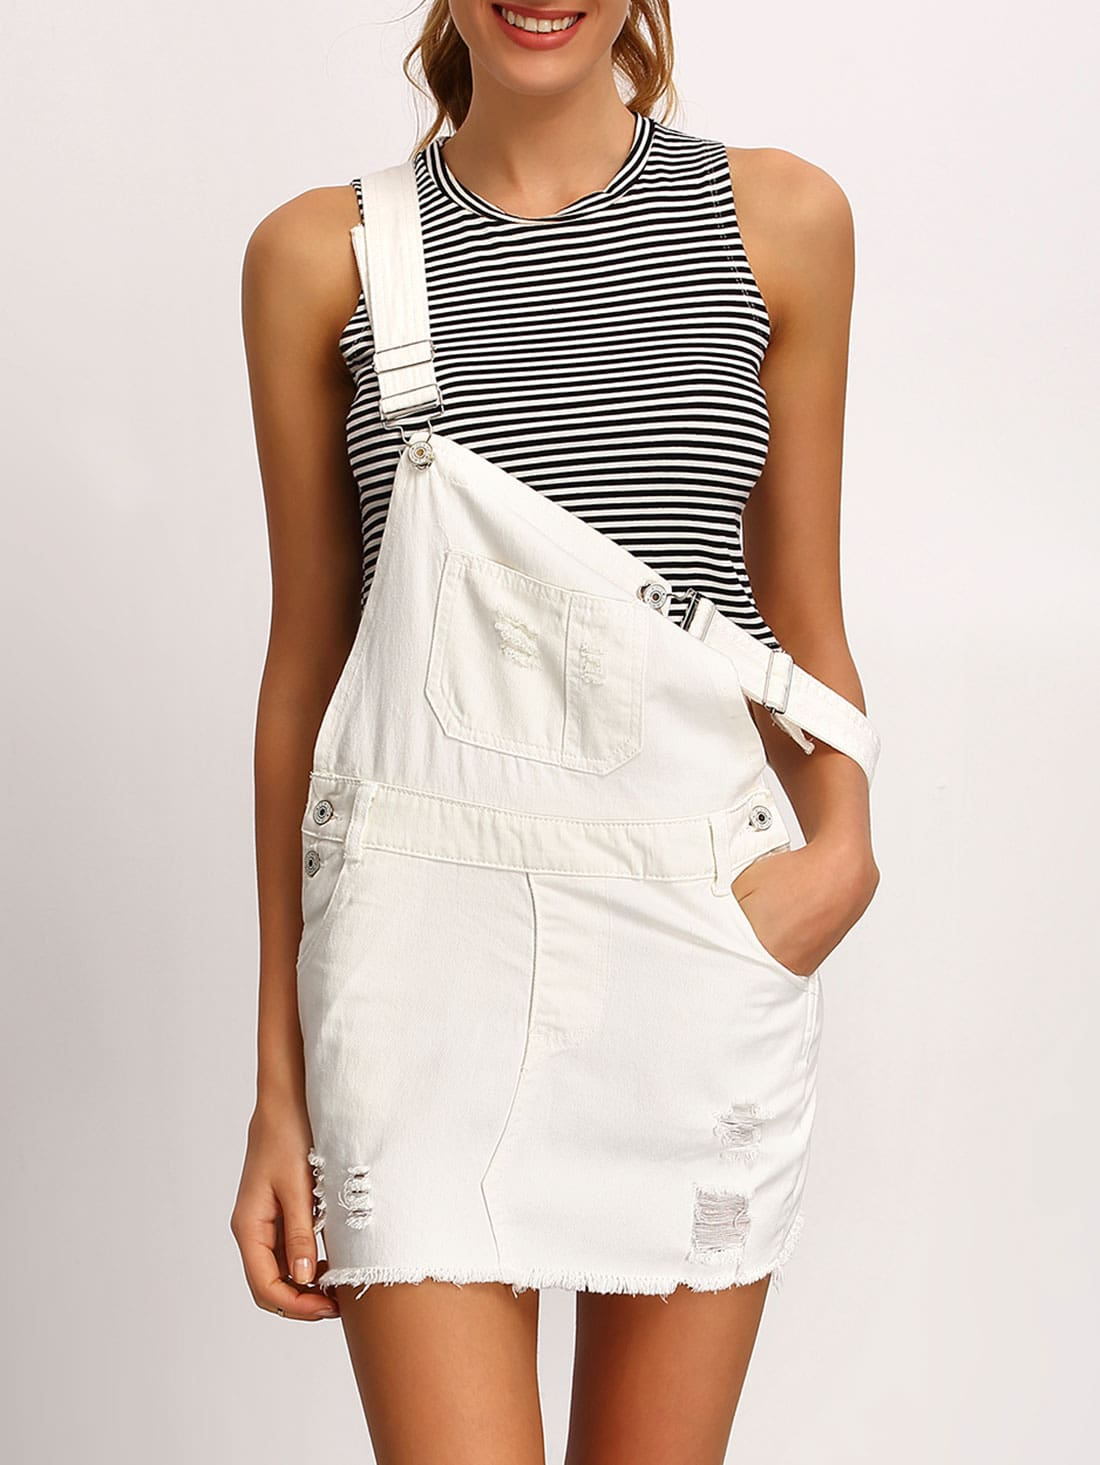 Find great deals on eBay for overall dress. Shop with confidence.